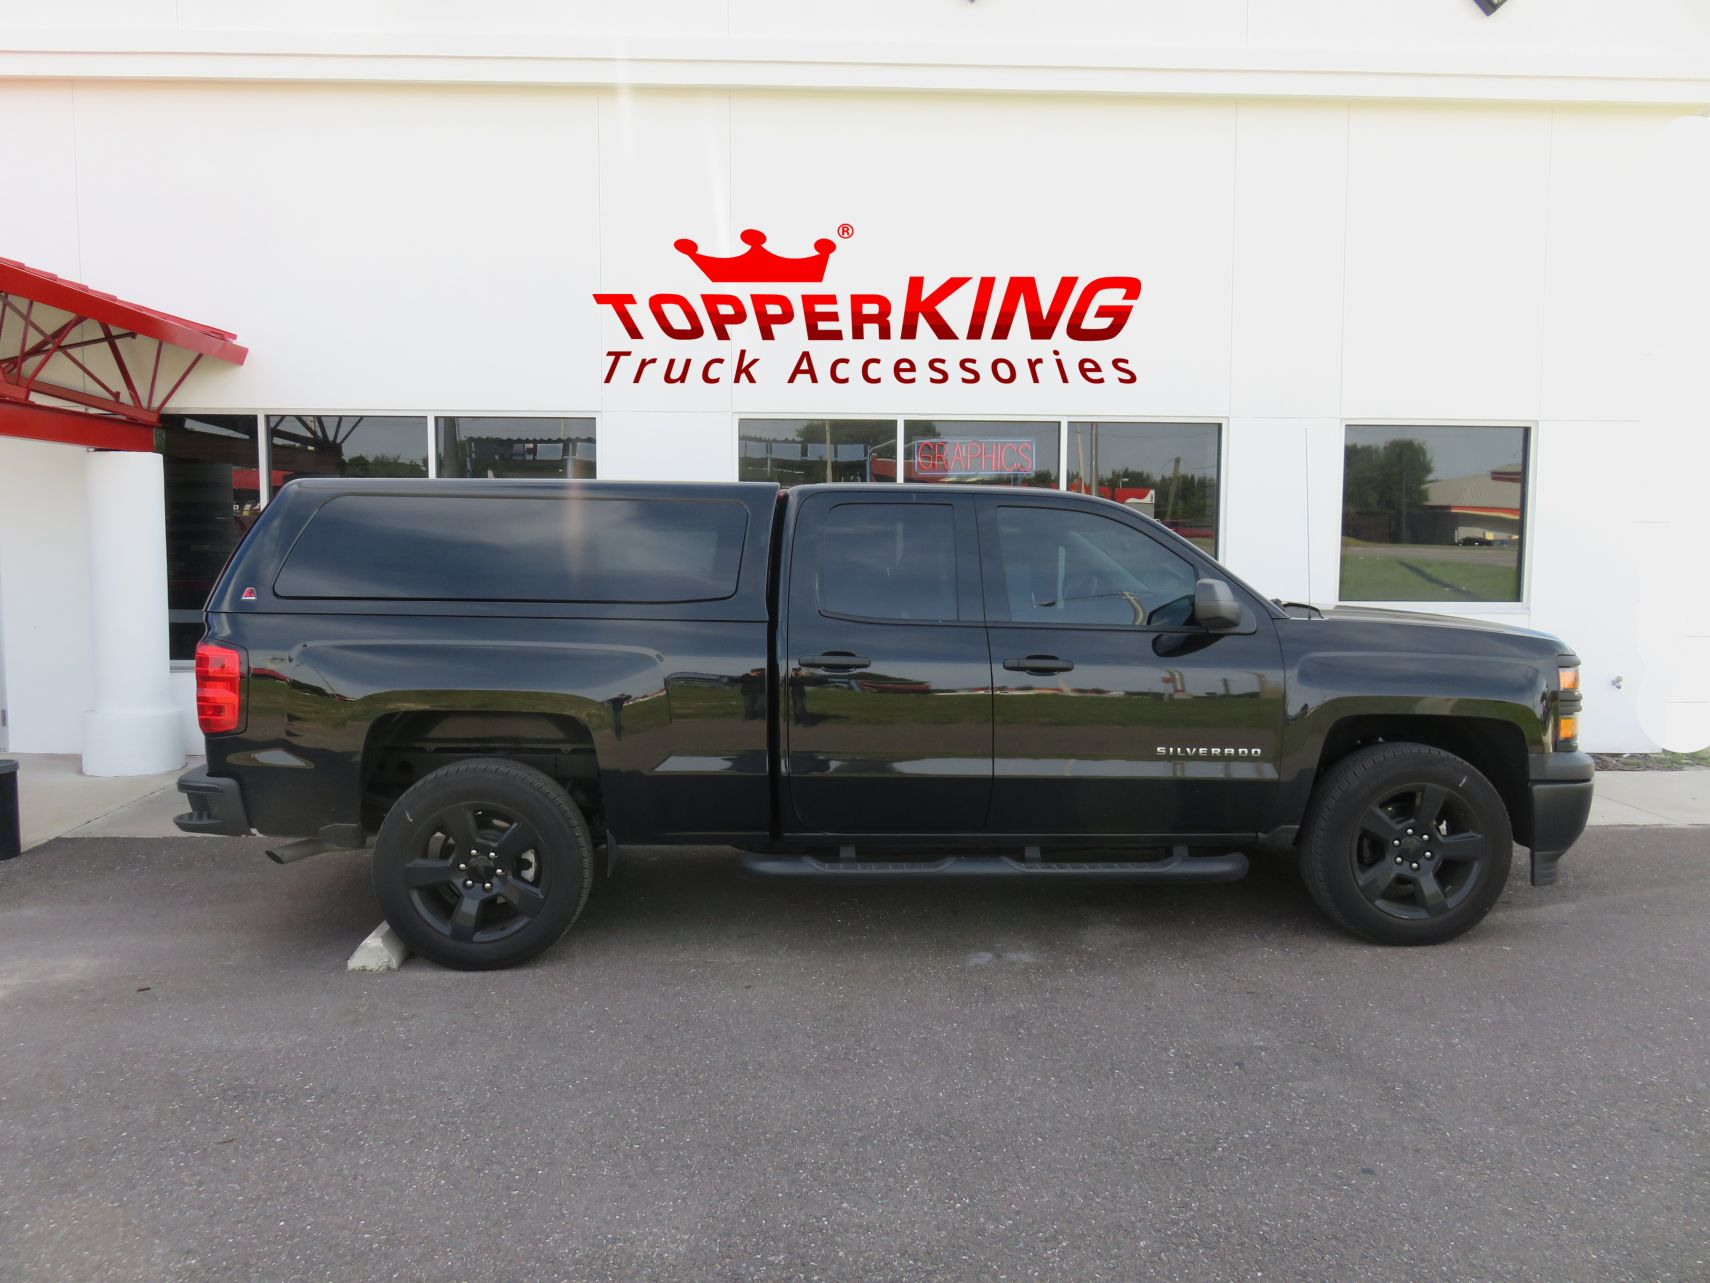 Chevy Silverado LEER 100XQ fiberglass topper and a custom hitch by TopperKING in Brandon, FL 813-689-2449 Call today to start on your truck!